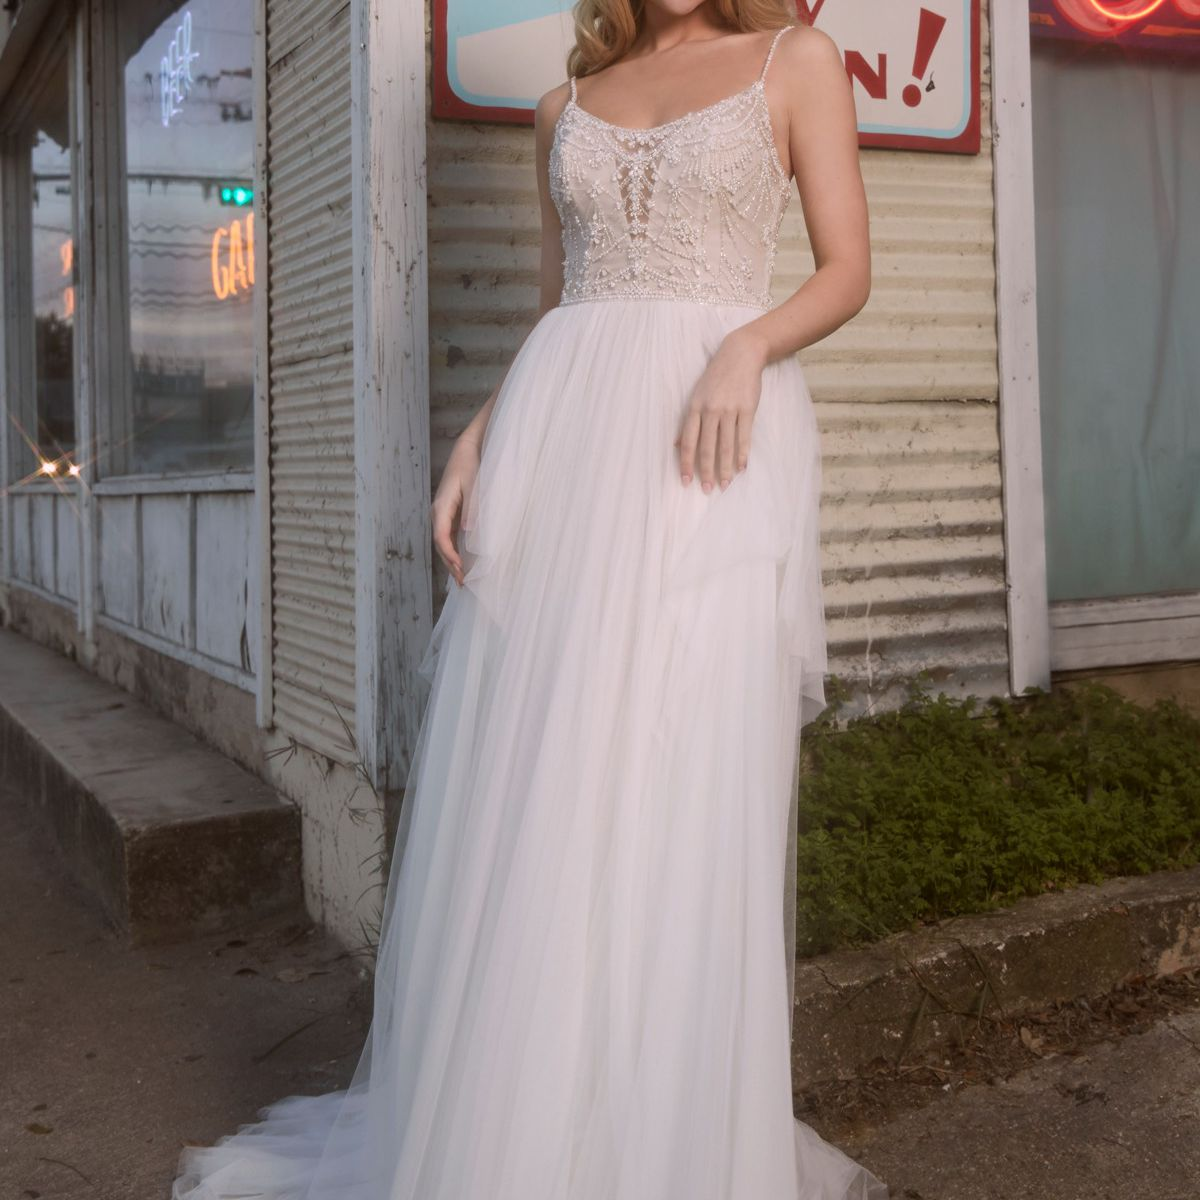 Model in scoop-neck A-line gown with beaded bodice and soft net skirt with pickups